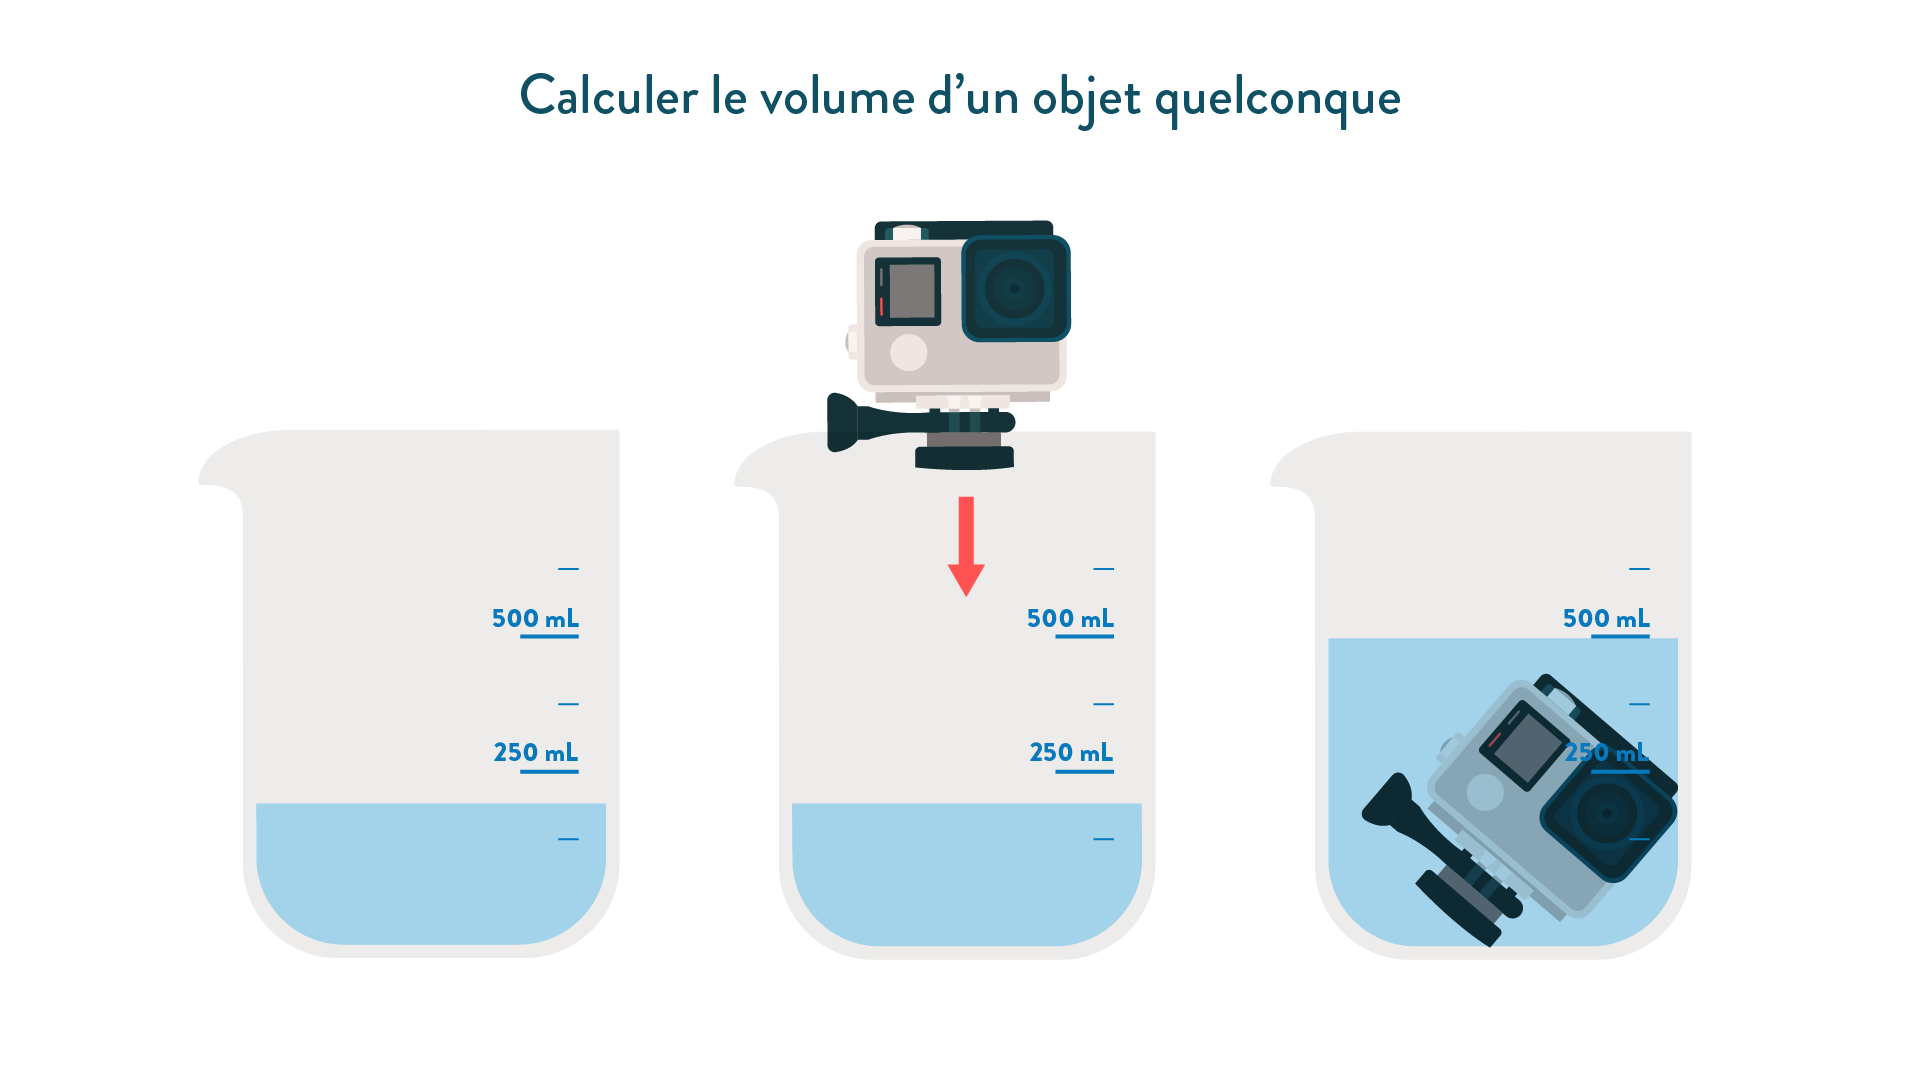 Calcul du volume d'un solide quelconque